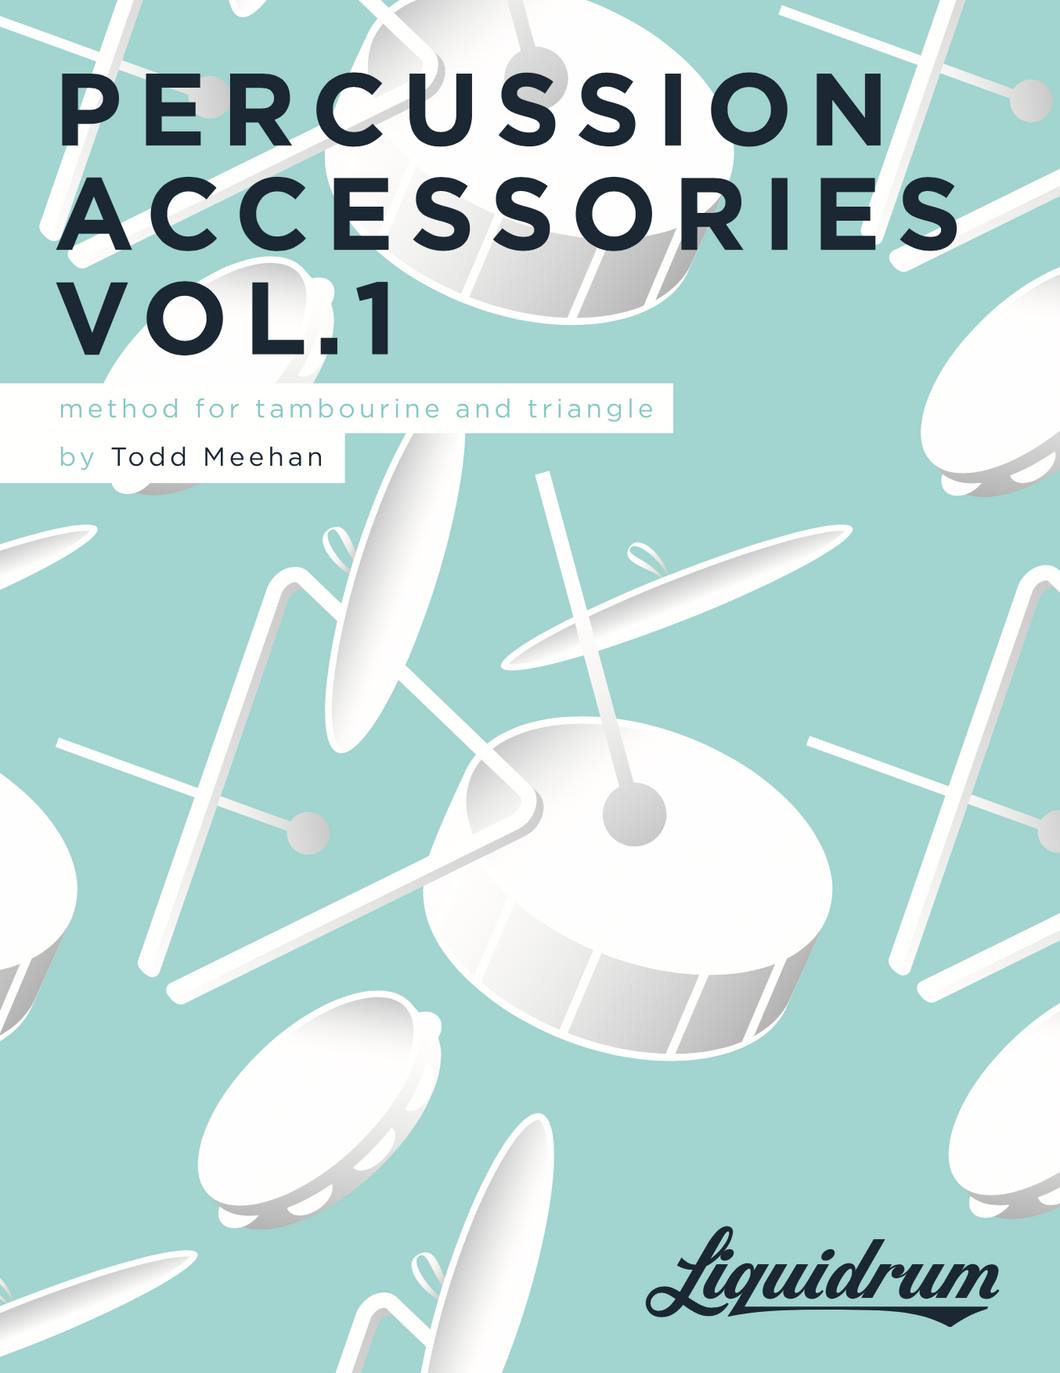 Percussion Accessories Vol. 1 — Method for Tambourine and Triangle (DIGITAL DOWNLOAD)